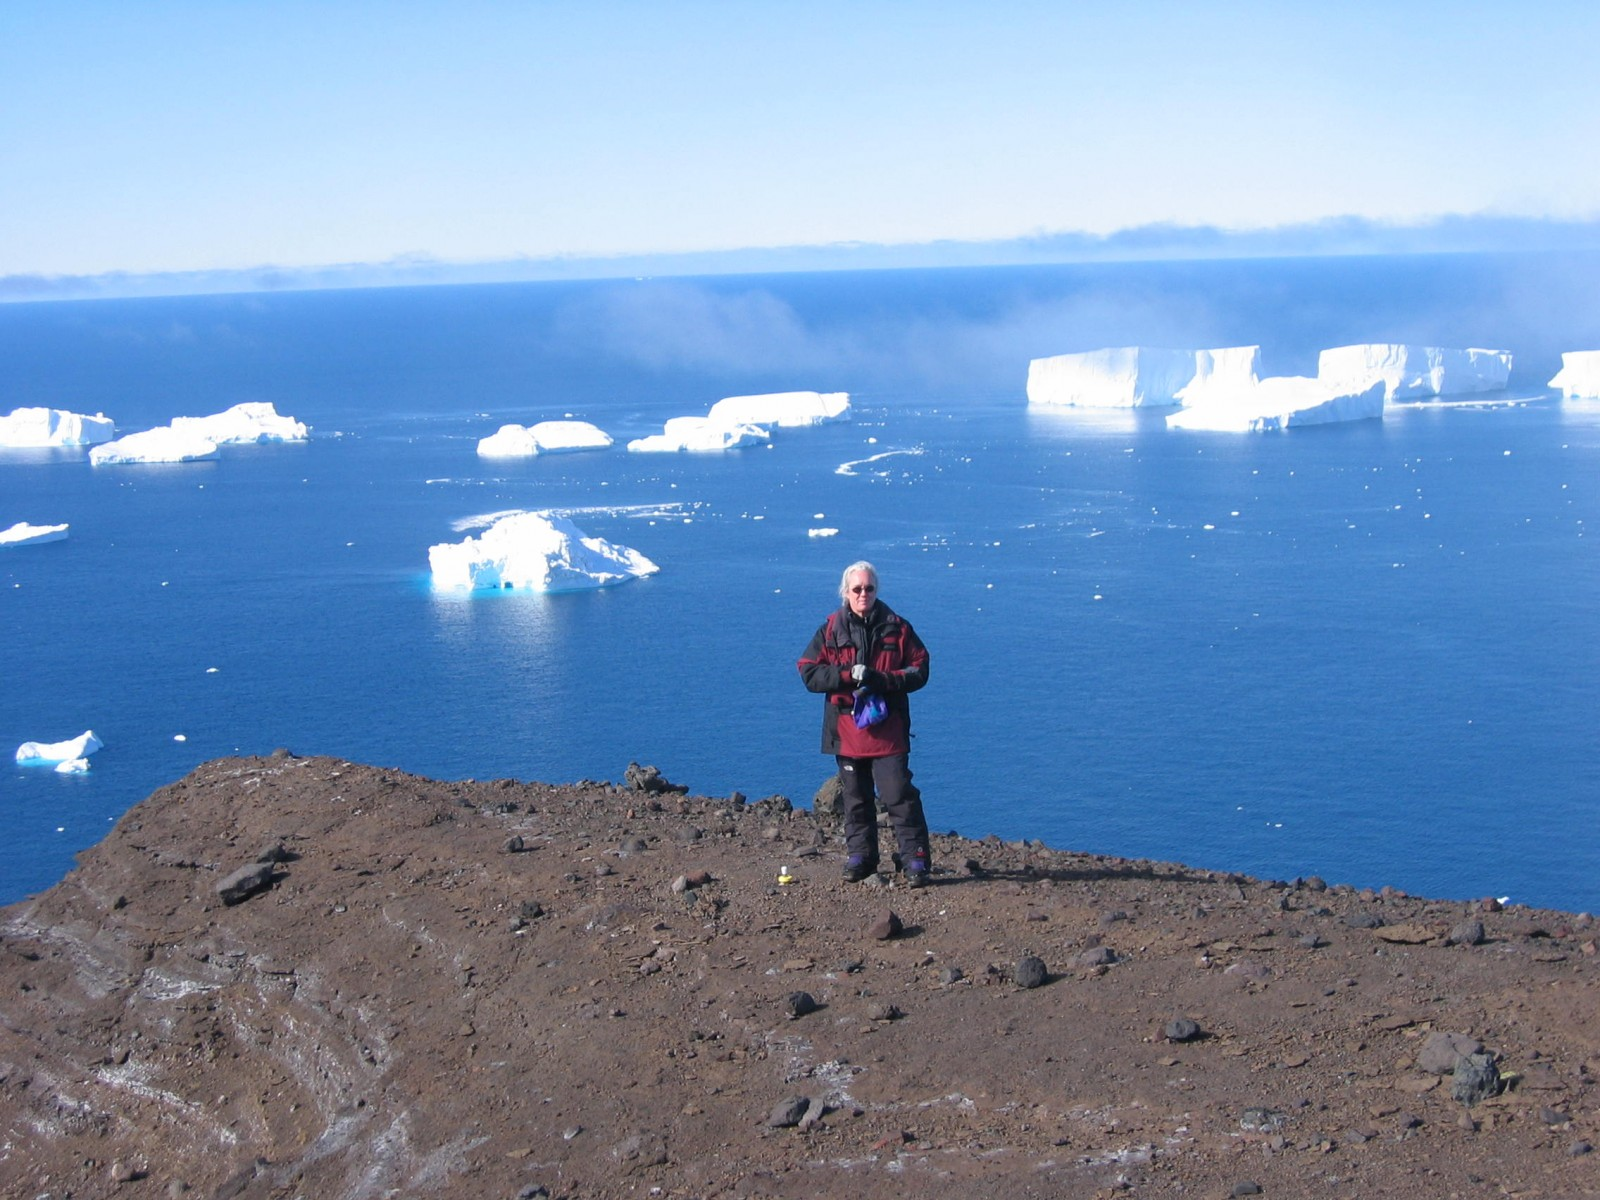 Terry Wilson on Franklin Island, in the Ross Sea in Antarctica